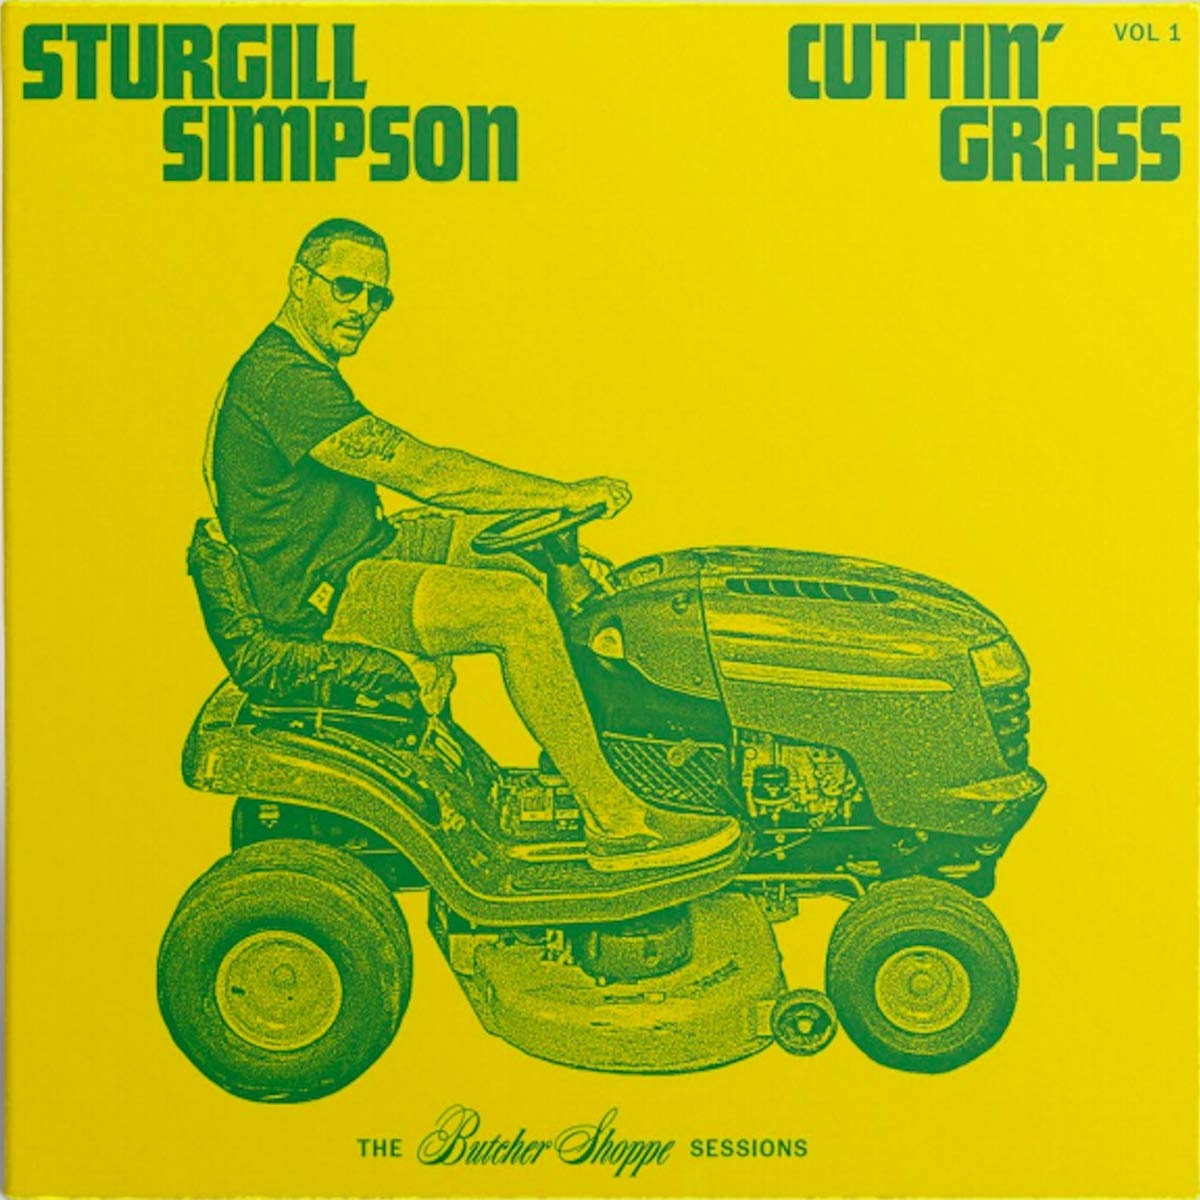 CD review - Cuttun' Grass Vol 1 The Butcher Shoppe Sessions